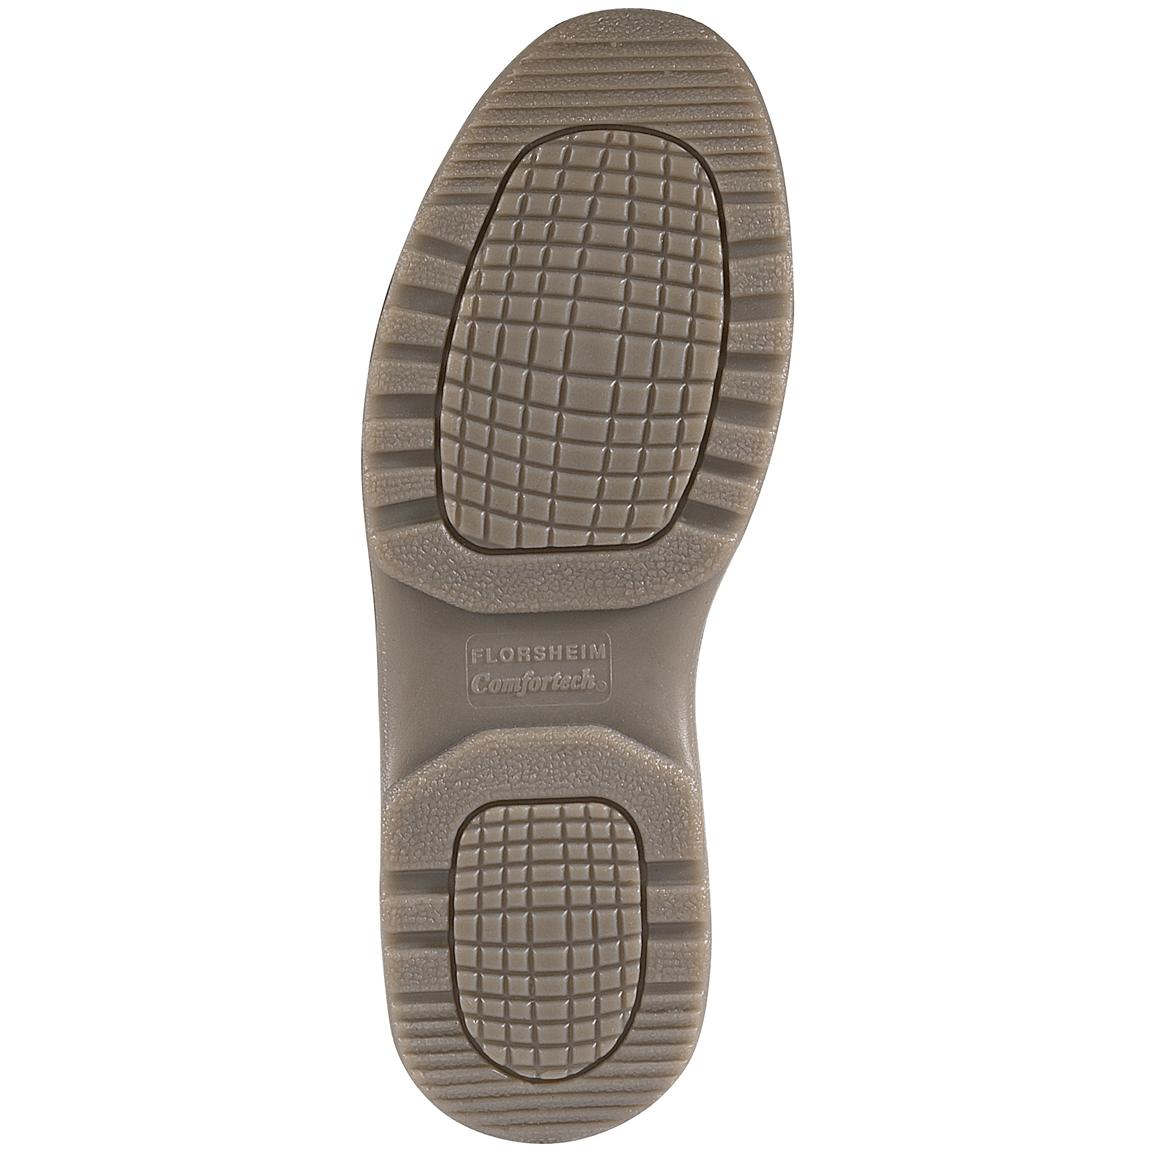 Super soft polyurethane midsoles plus a hard wearing sole for long-lasting comfort